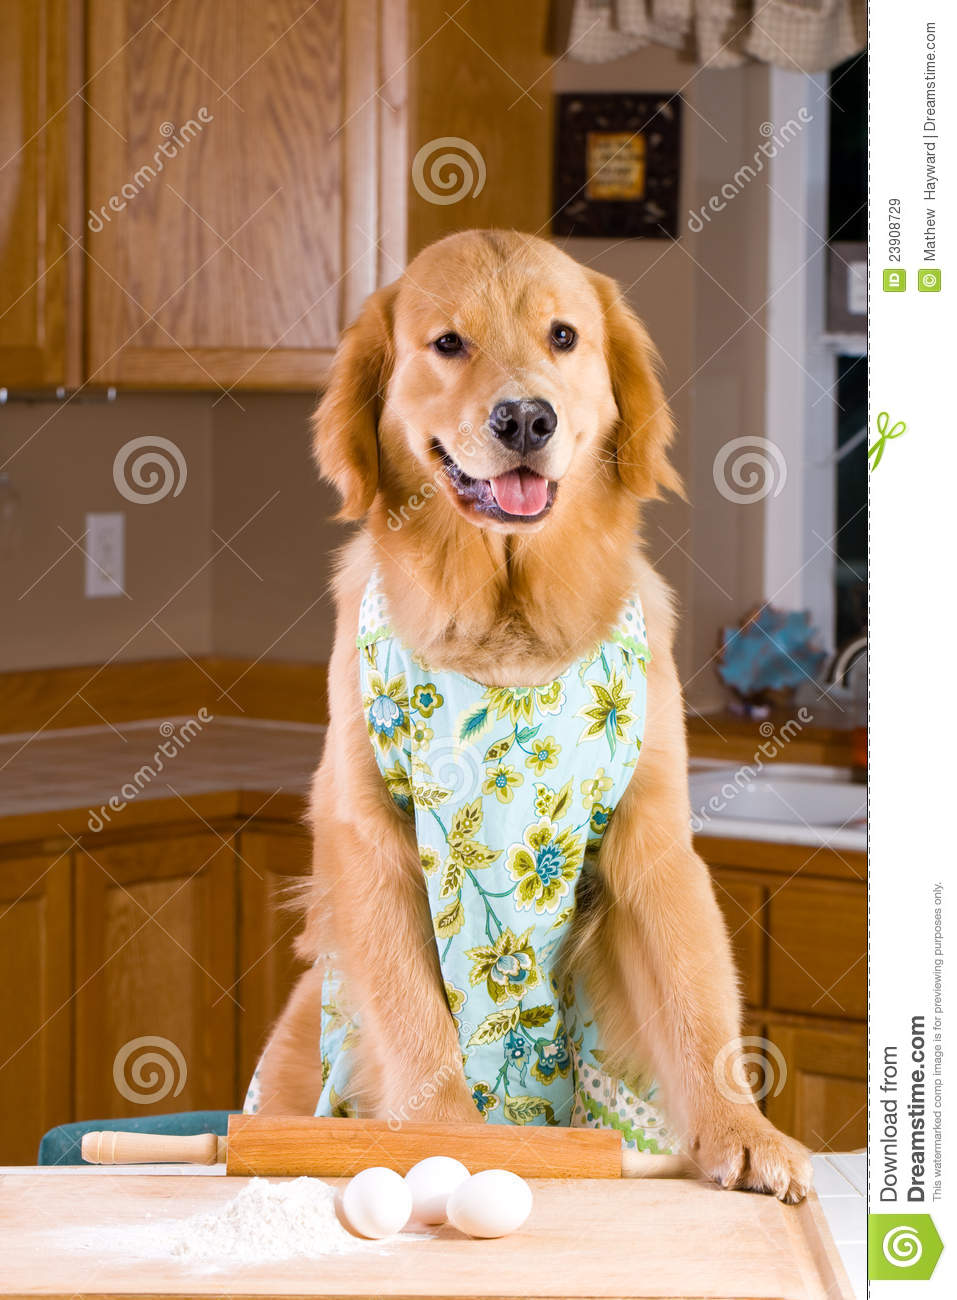 Cooking Dog Stock Image Image Of Homemade Kitchen Board